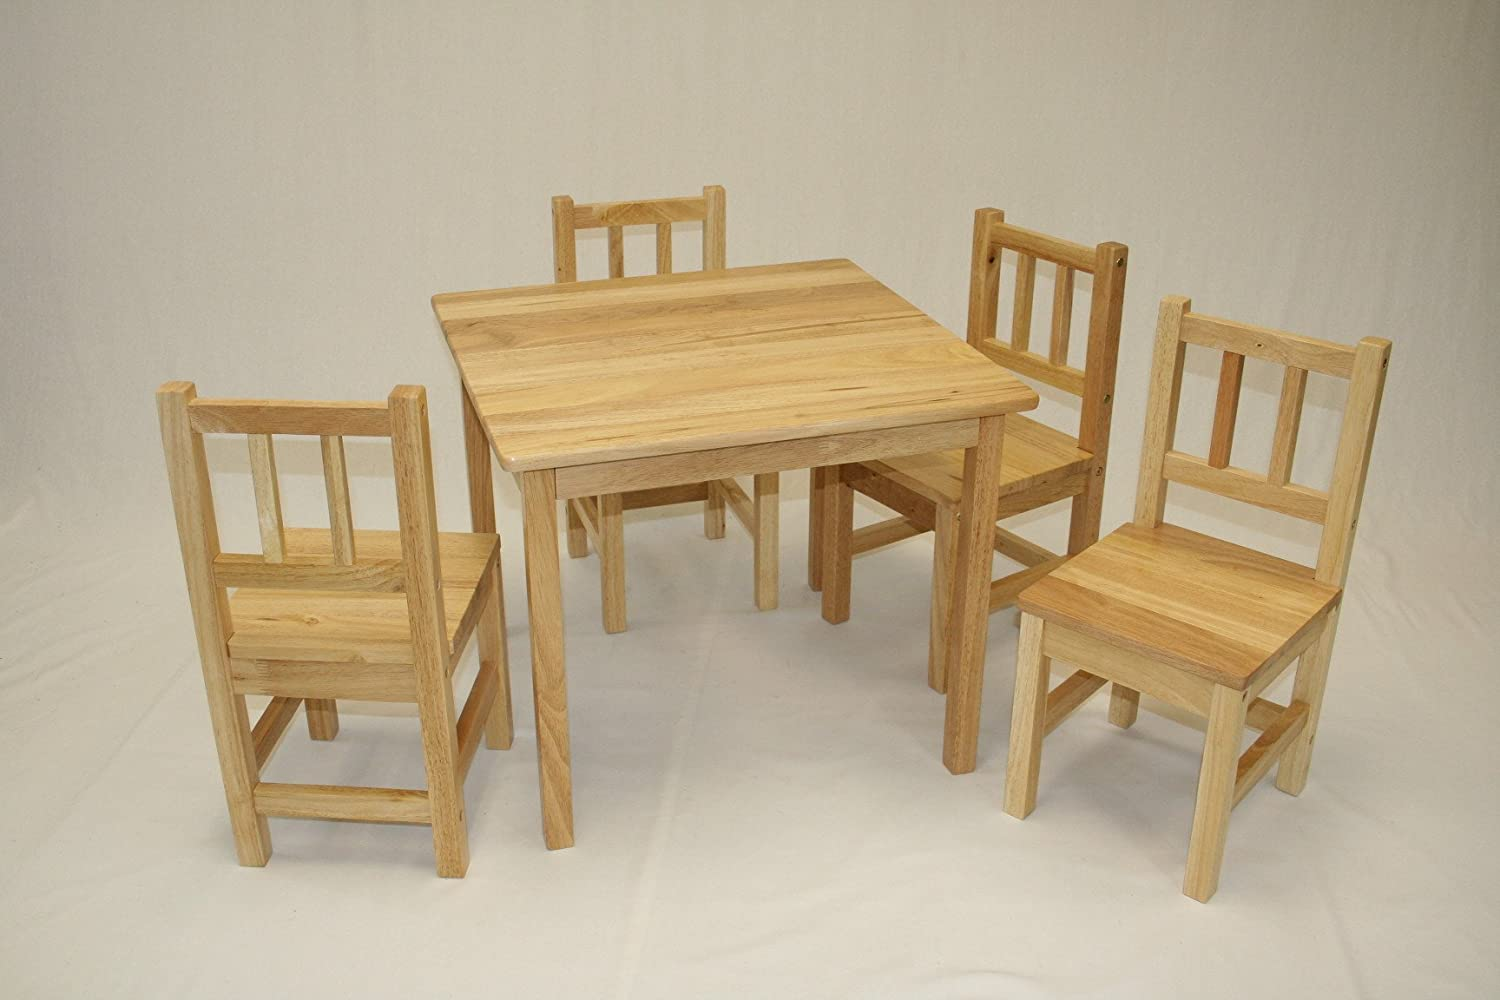 Amazon.com eHemco Kids Table and 4 Chairs Set Solid Hard Wood in Natual Kitchen \u0026 Dining & Amazon.com: eHemco Kids Table and 4 Chairs Set Solid Hard Wood in ...